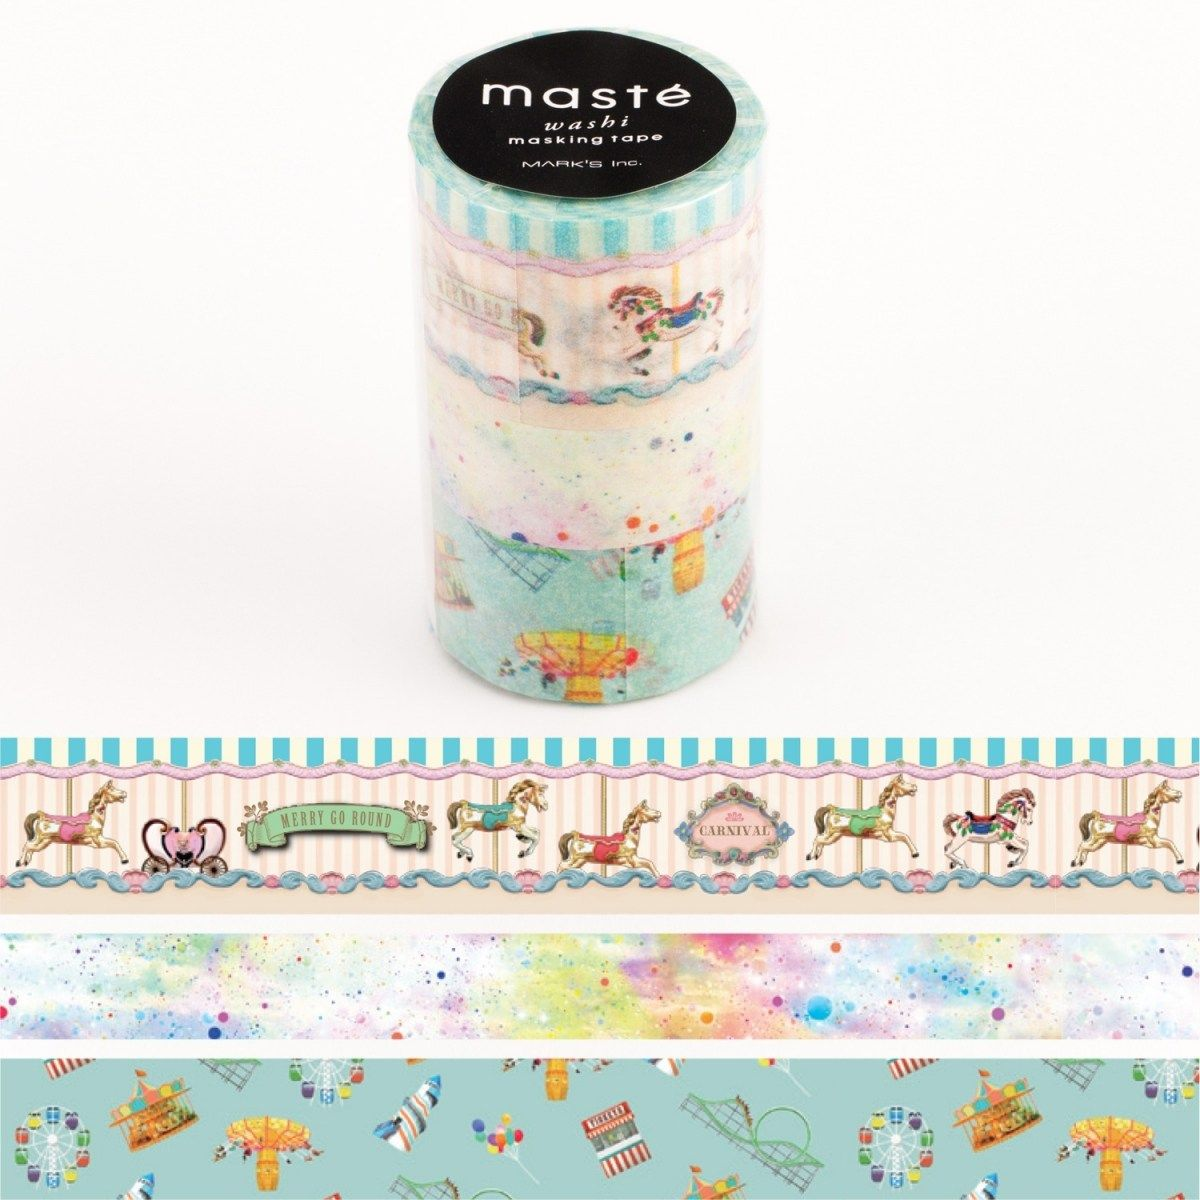 WASHI TAPE MASTÉ CITY 2 (KIT C/ 3)